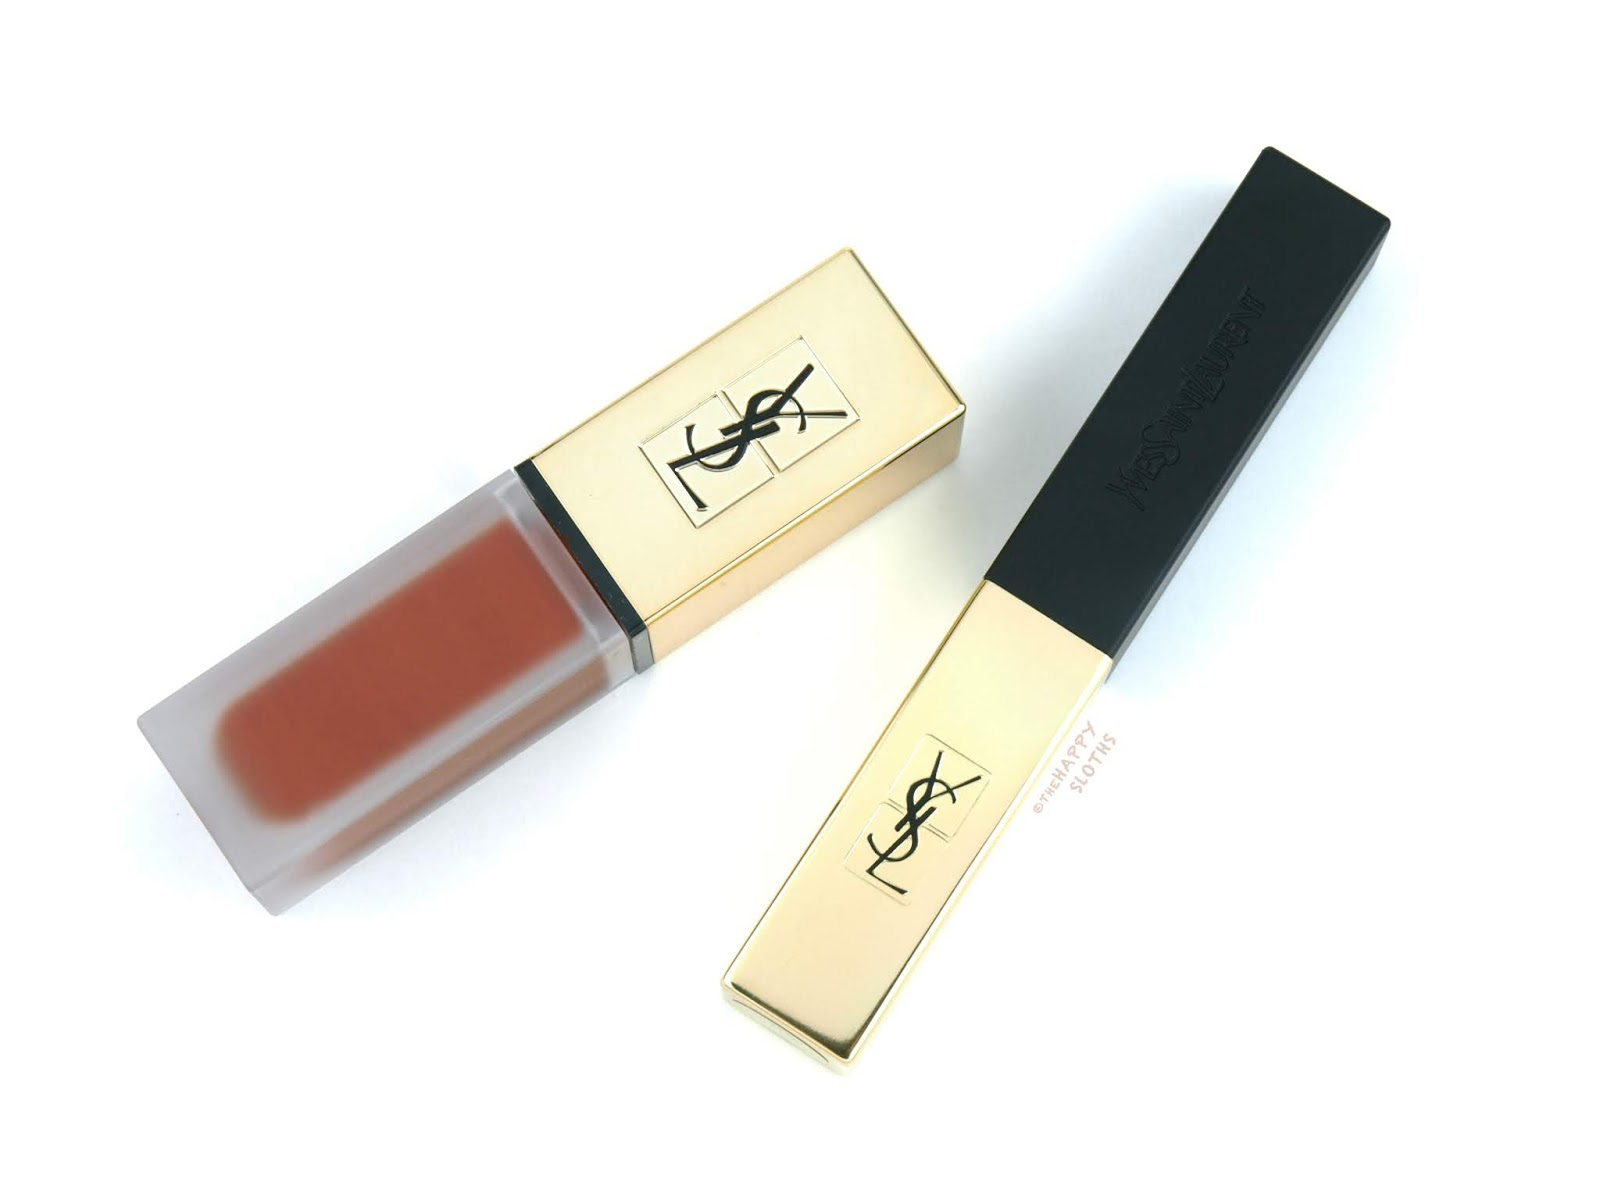 "Yves Saint Laurent | Rouge Pur Couture The Slim Matte Lipstick in ""21 Rouge Paradoxe"" & Tatouage Couture The Metallics Matte Stain in ""103 Tribal Copper"": Review and Swatches"